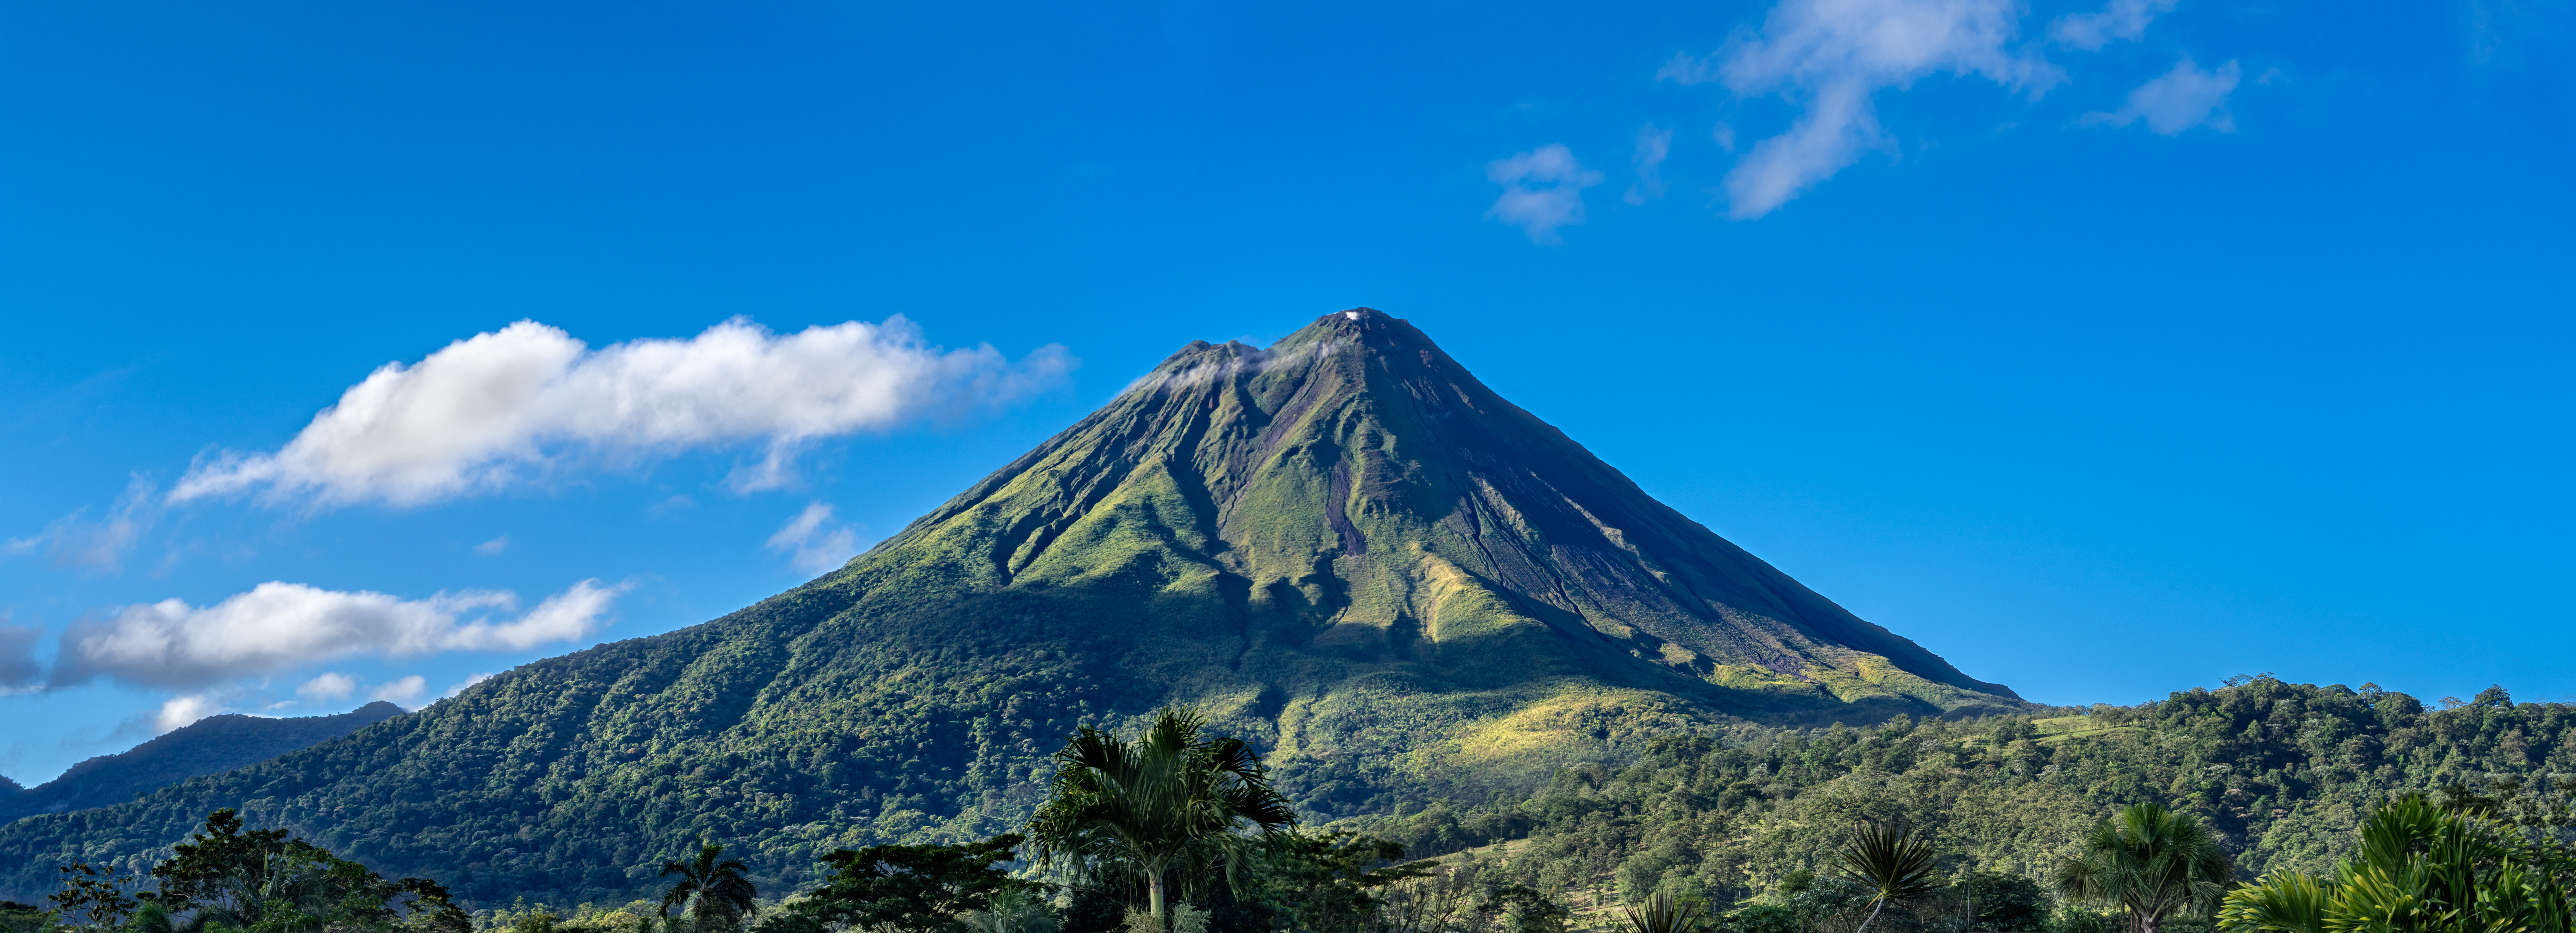 3 must see volcanoes when visiting Guanacaste Costa Rica